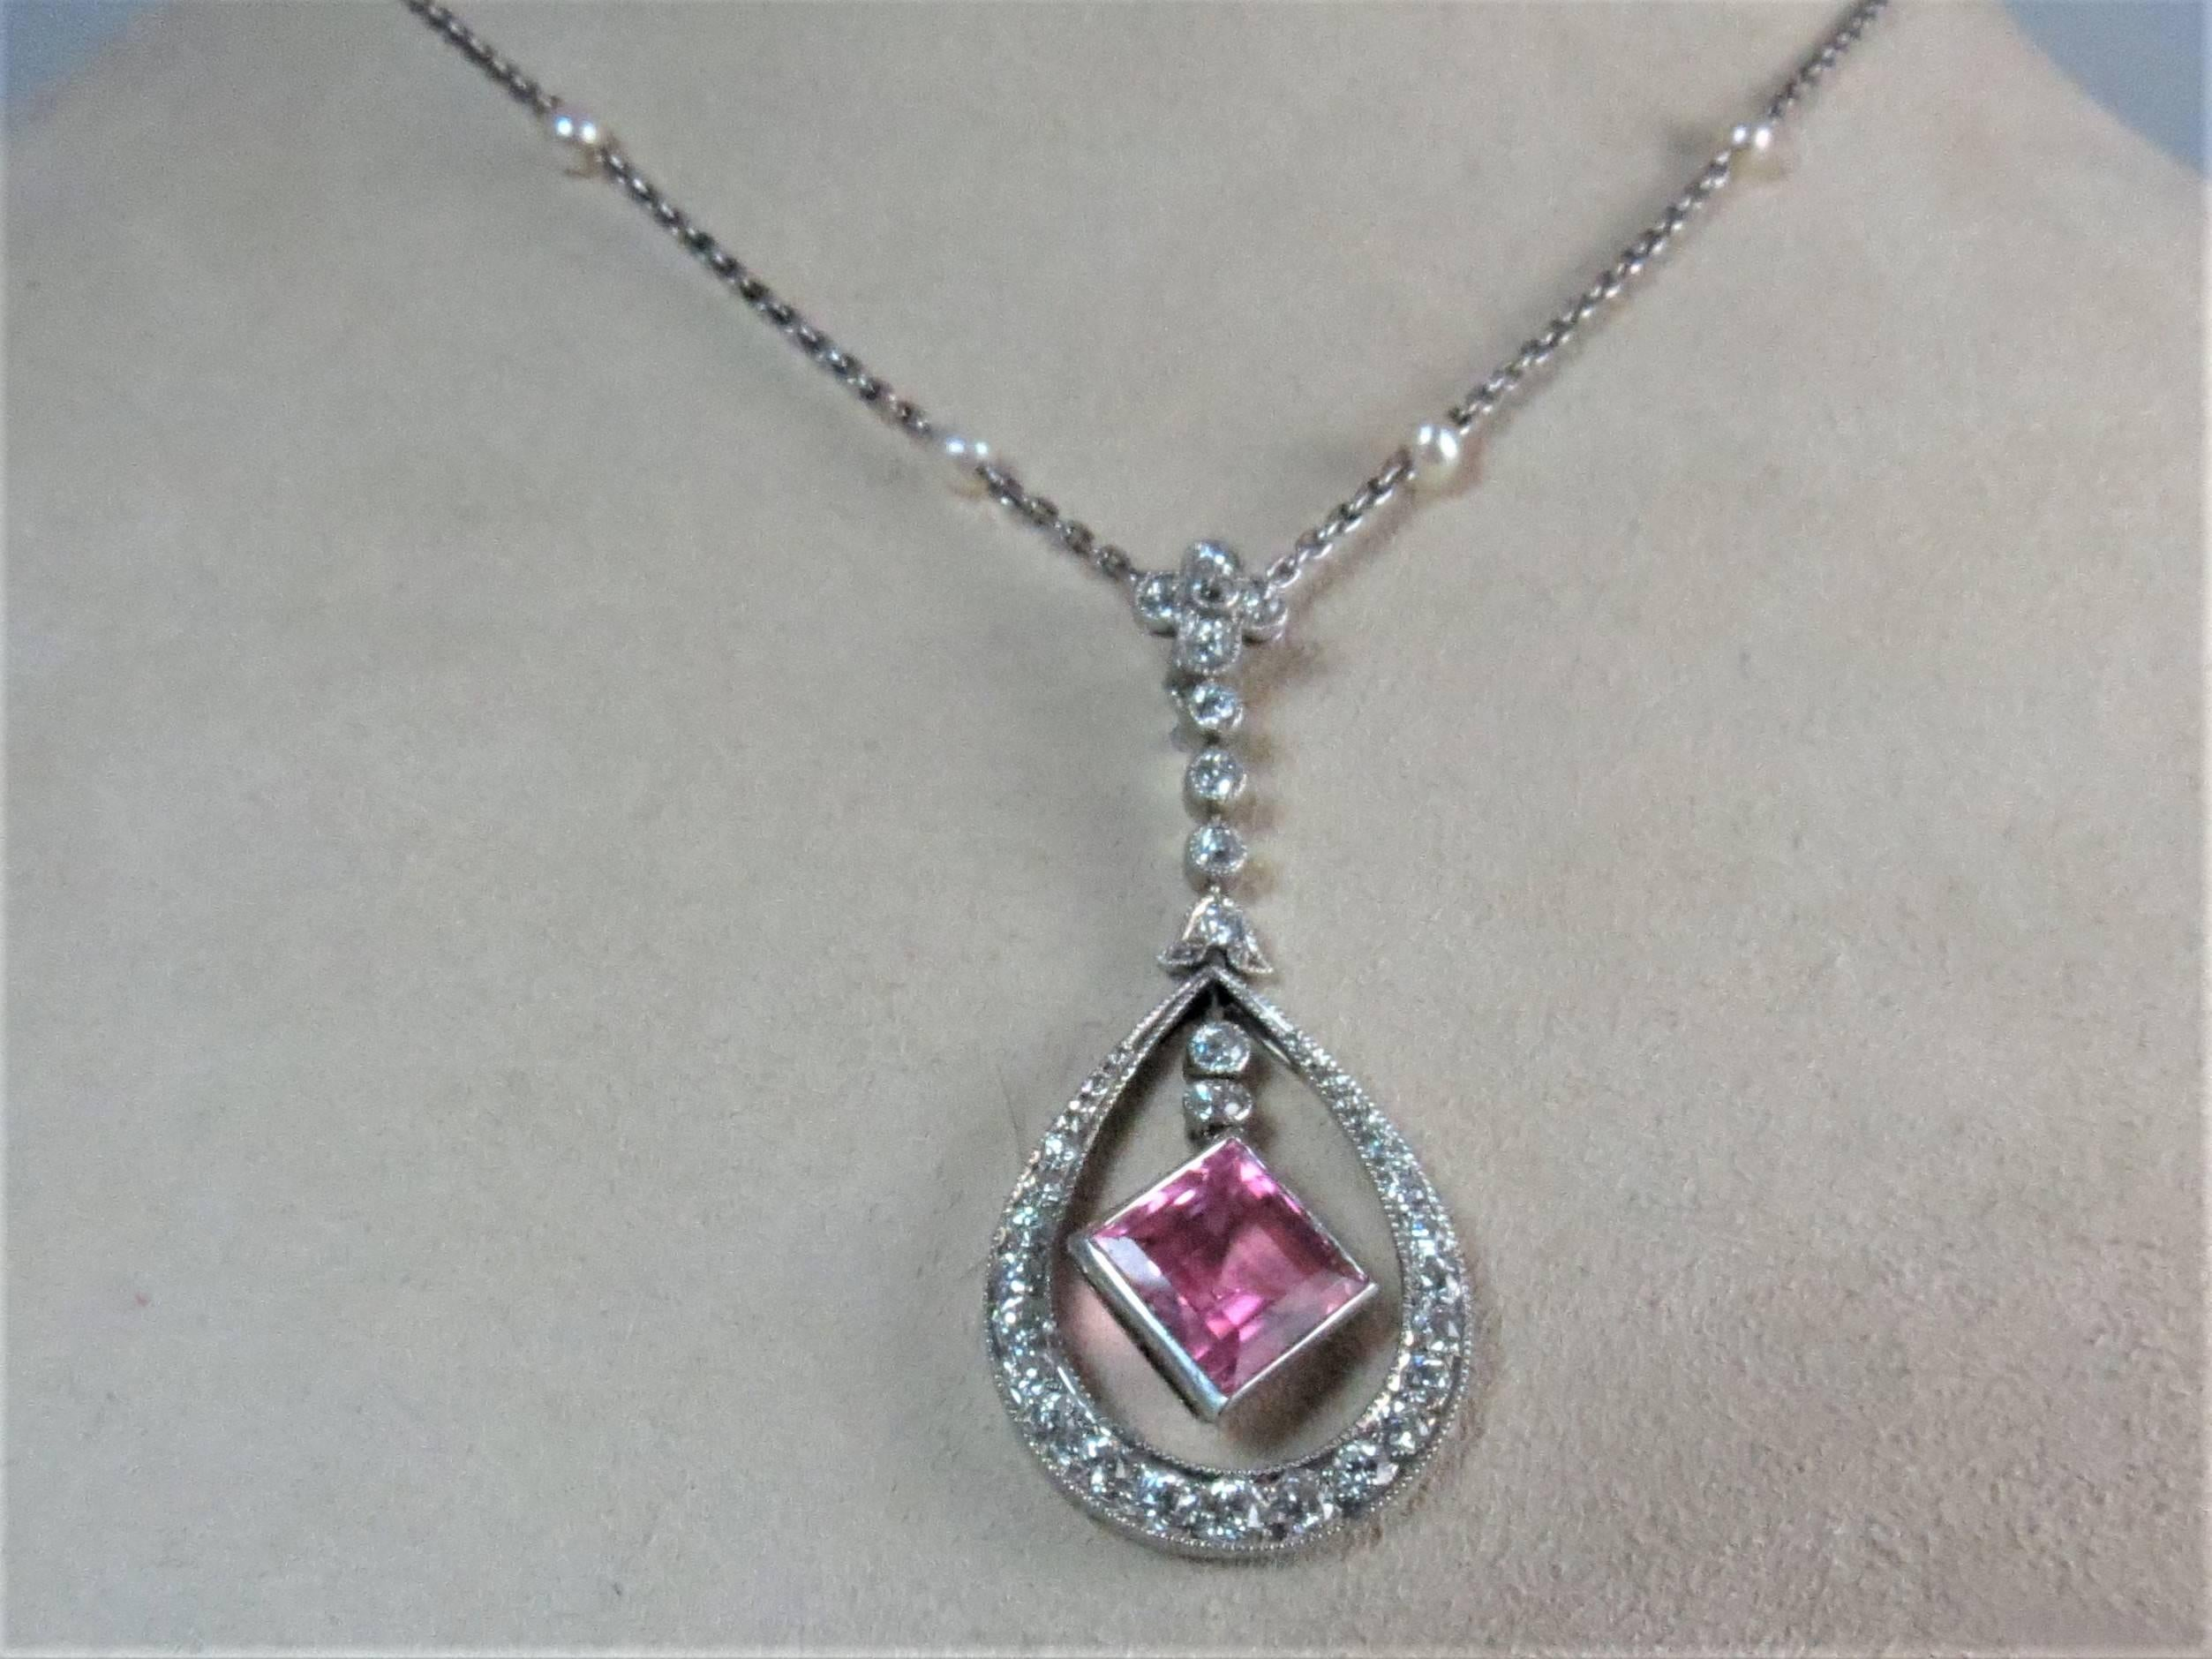 pendant product sydney jewellery germani tourmaline pink necklace